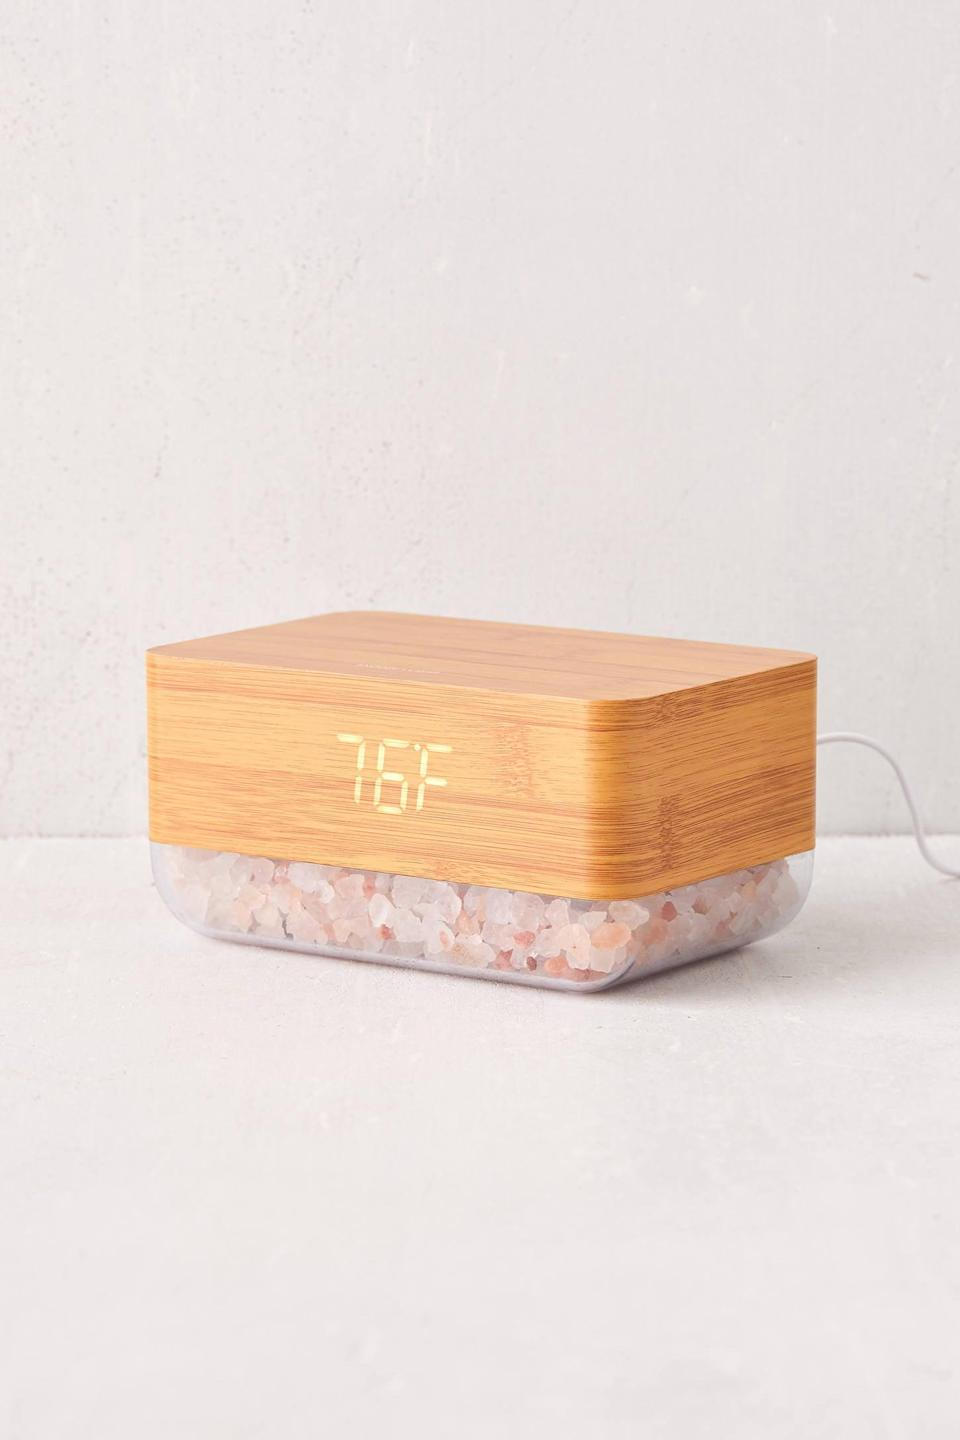 "<h2>Mahli Himalayan Salt Sunrise Alarm Clock</h2><br>Both calming and functional, the Mahli alarm clock offers a soothing glow and scent. <br><br><strong>Mahli</strong> Mahli Himalayan Salt Sunrise Alarm Clock, $, available at <a href=""https://go.skimresources.com/?id=30283X879131&url=https%3A%2F%2Fwww.urbanoutfitters.com%2Fshop%2Fmahli-himalayan-salt-sunrise-alarm-clock%3F"" rel=""nofollow noopener"" target=""_blank"" data-ylk=""slk:Urban Outfitters"" class=""link rapid-noclick-resp"">Urban Outfitters</a>"